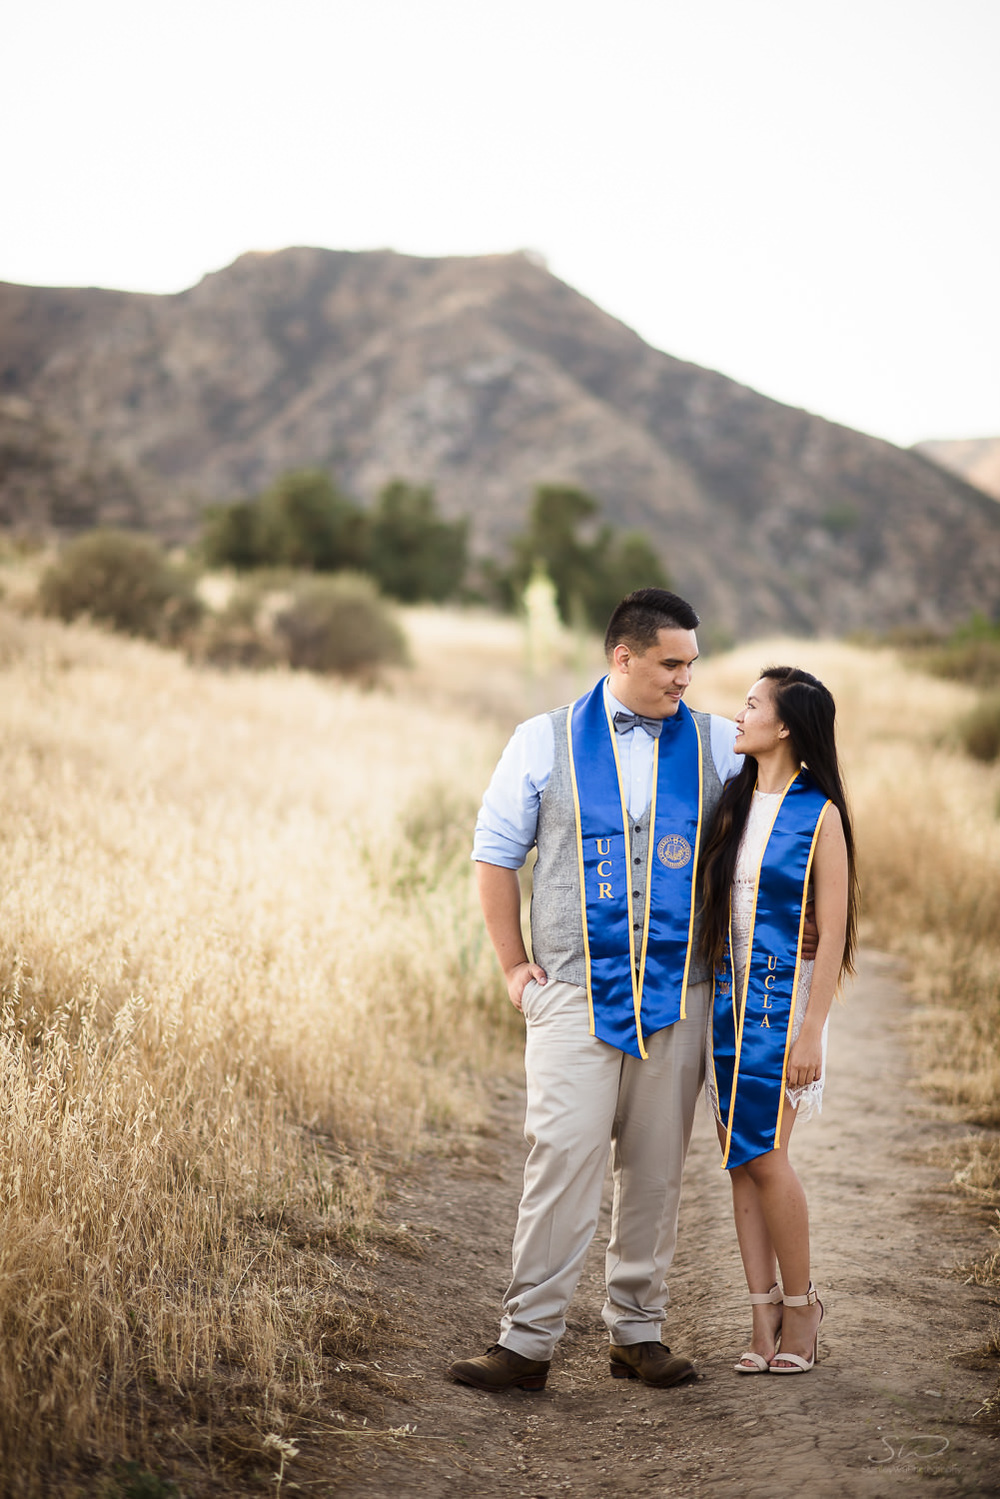 ucr_ucla_graduation_couple_granada_hills-14.jpg